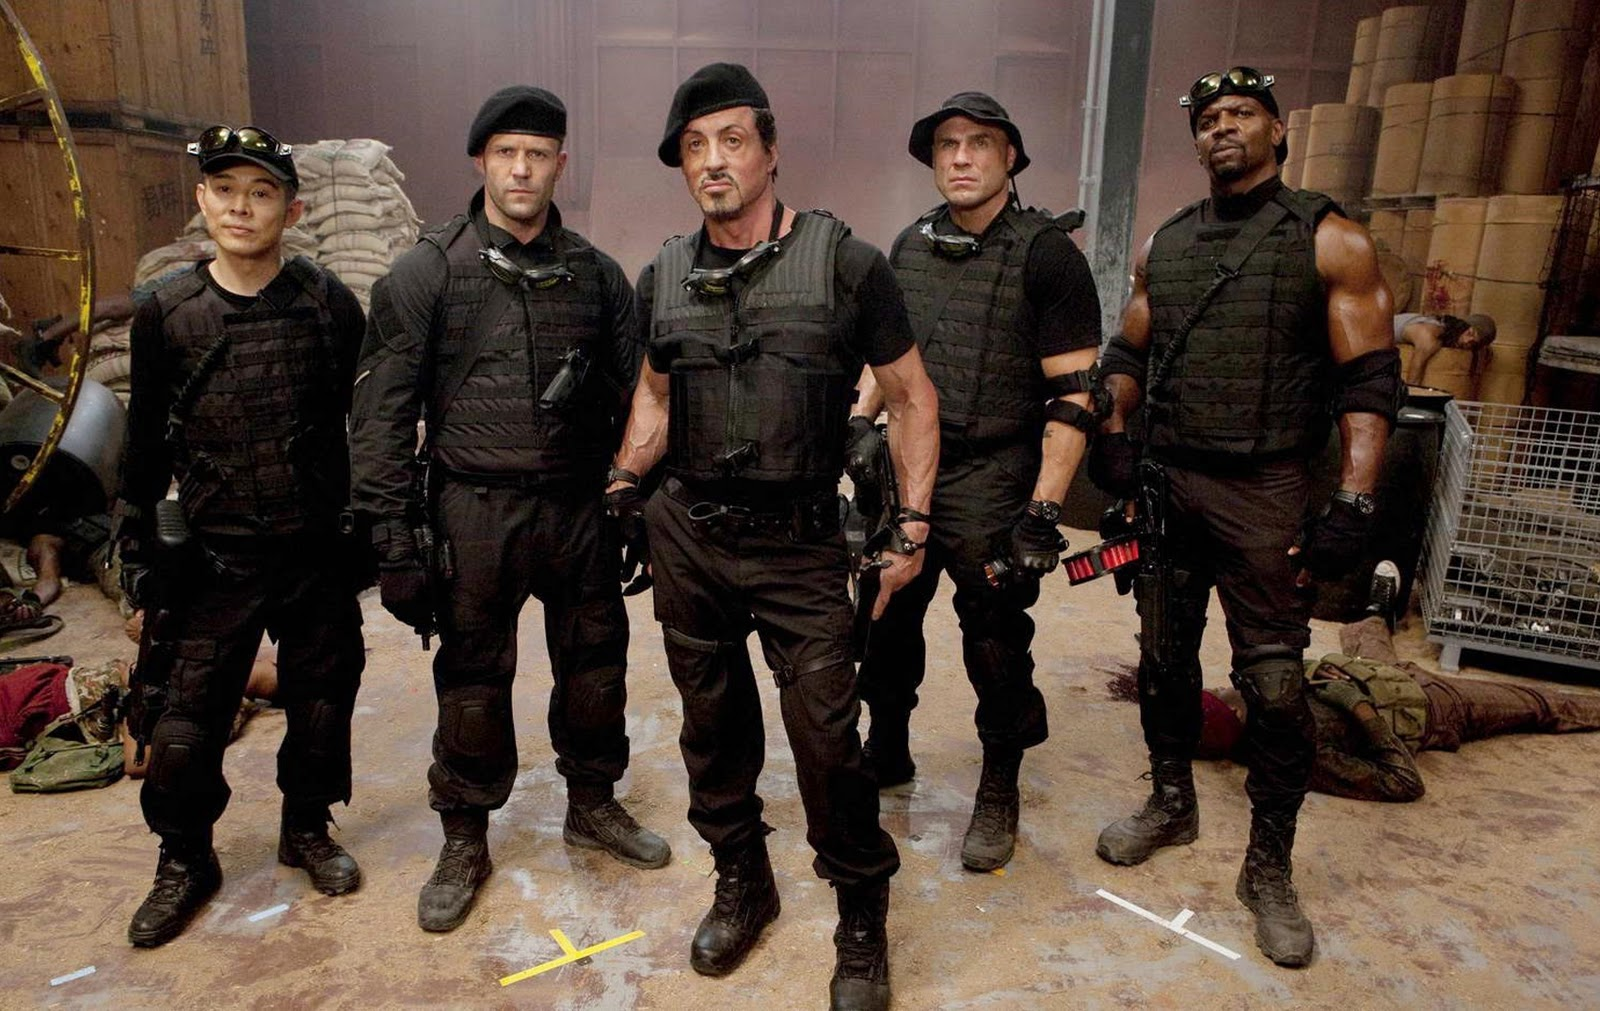 Review: The Expendables 2 (2012) | Awin Language